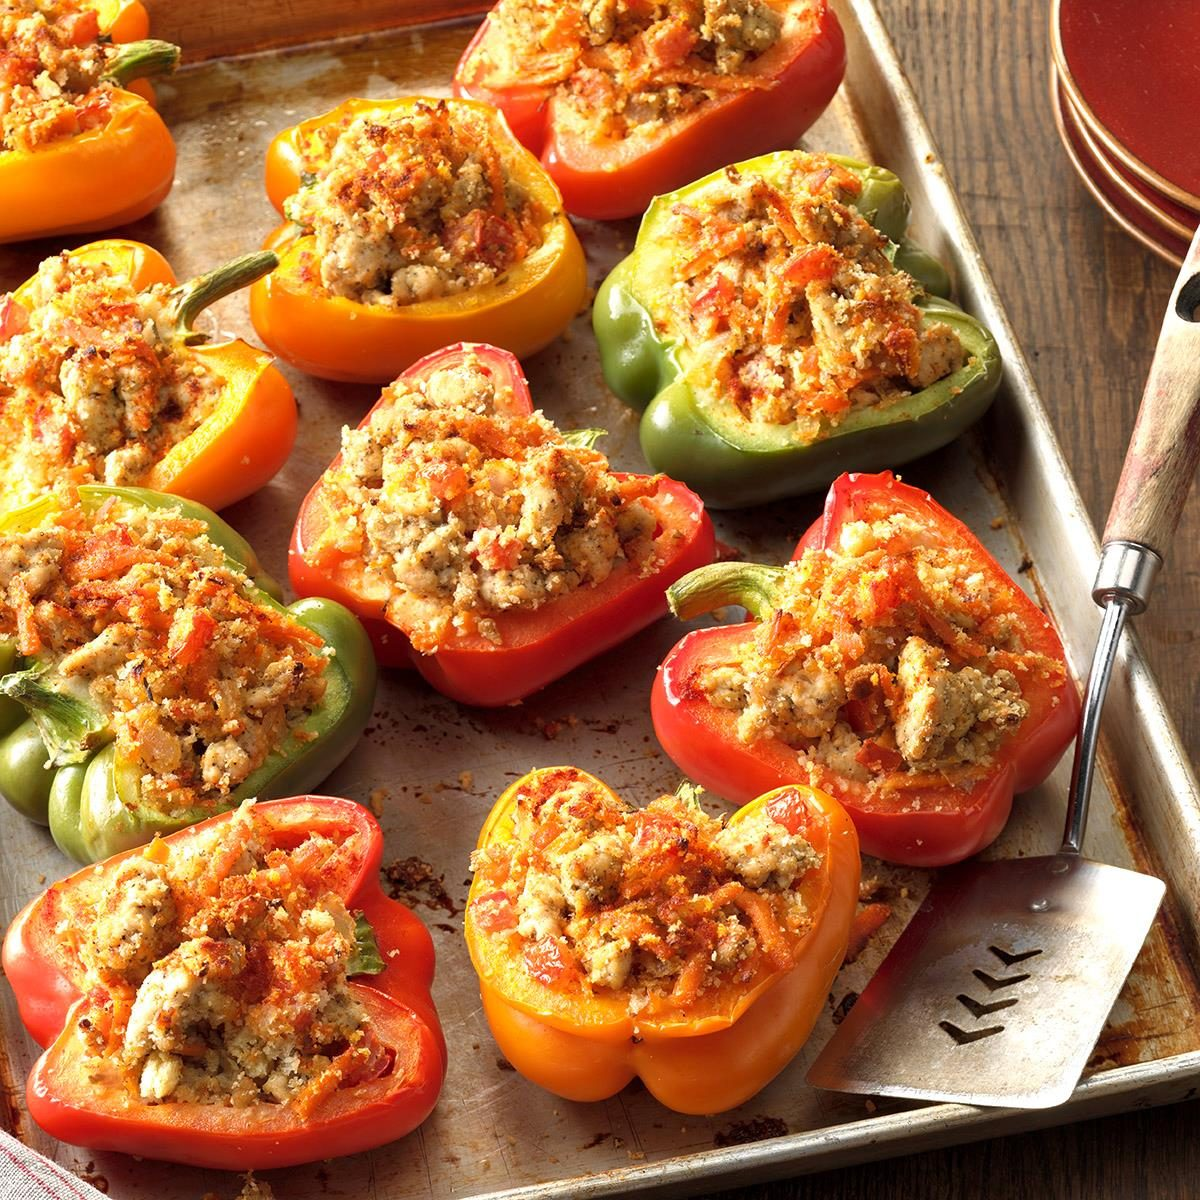 Day 7: Turkey-Stuffed Bell Peppers